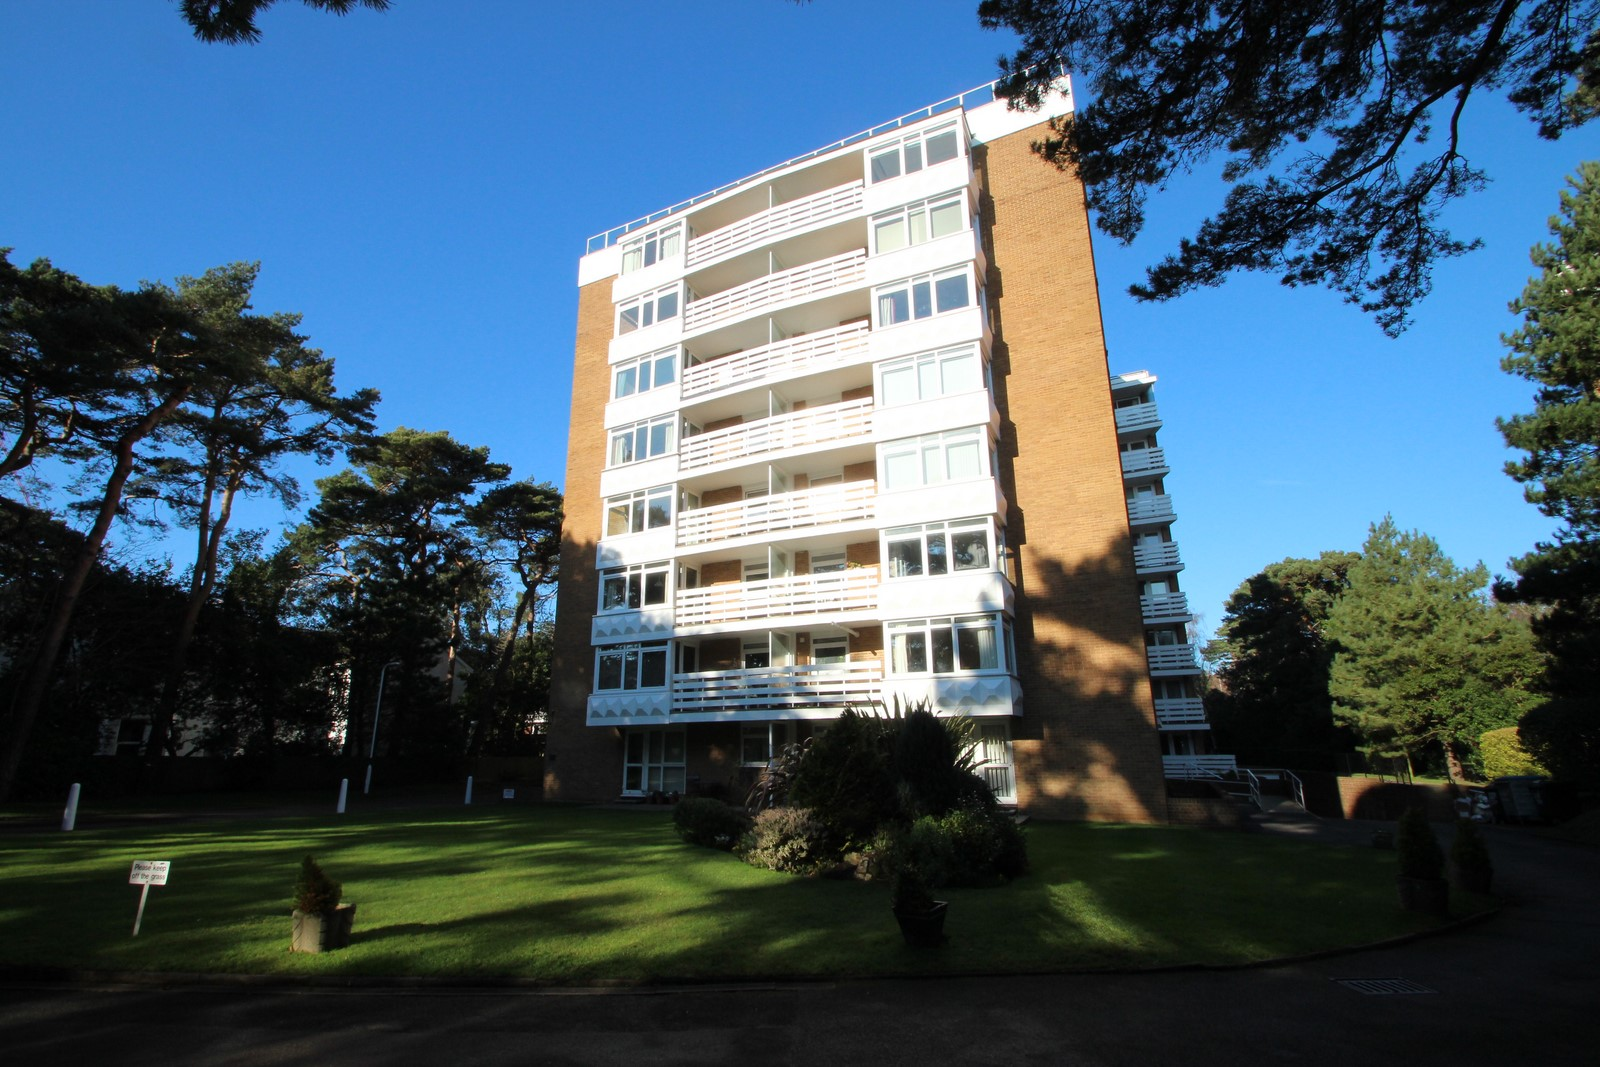 2 Bedroom Penthouse in Bournemouth